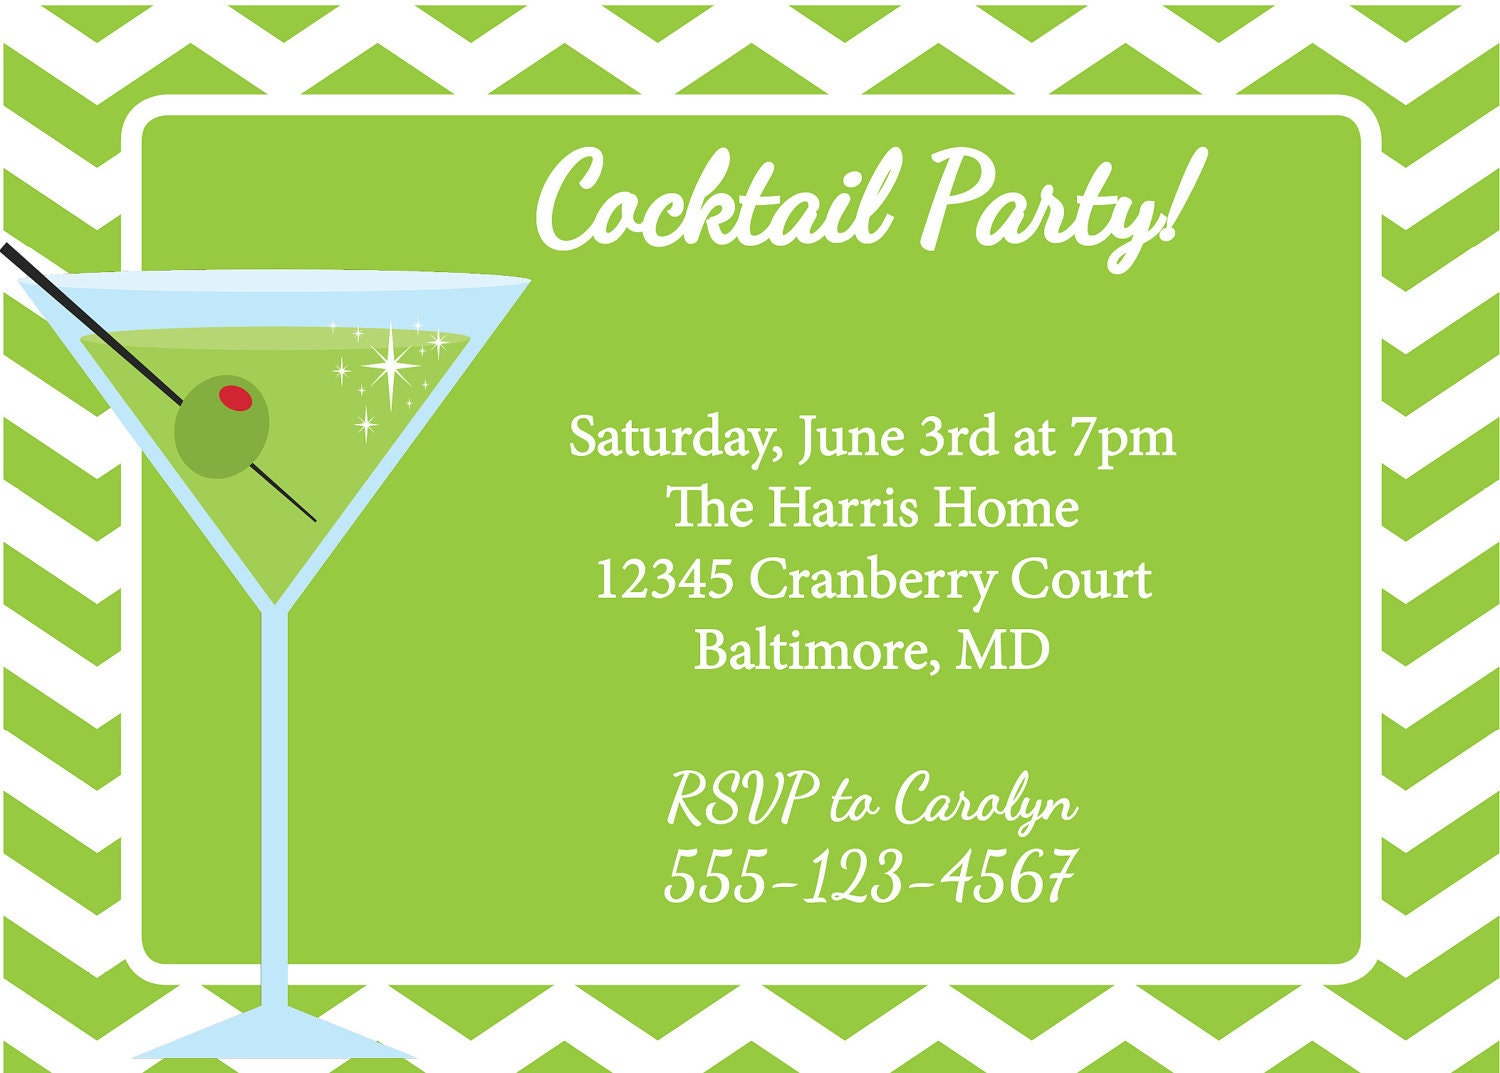 martini invitation cocktail party diy printable green martini martini invitation cocktail party diy printable green martini invite 🔎zoom